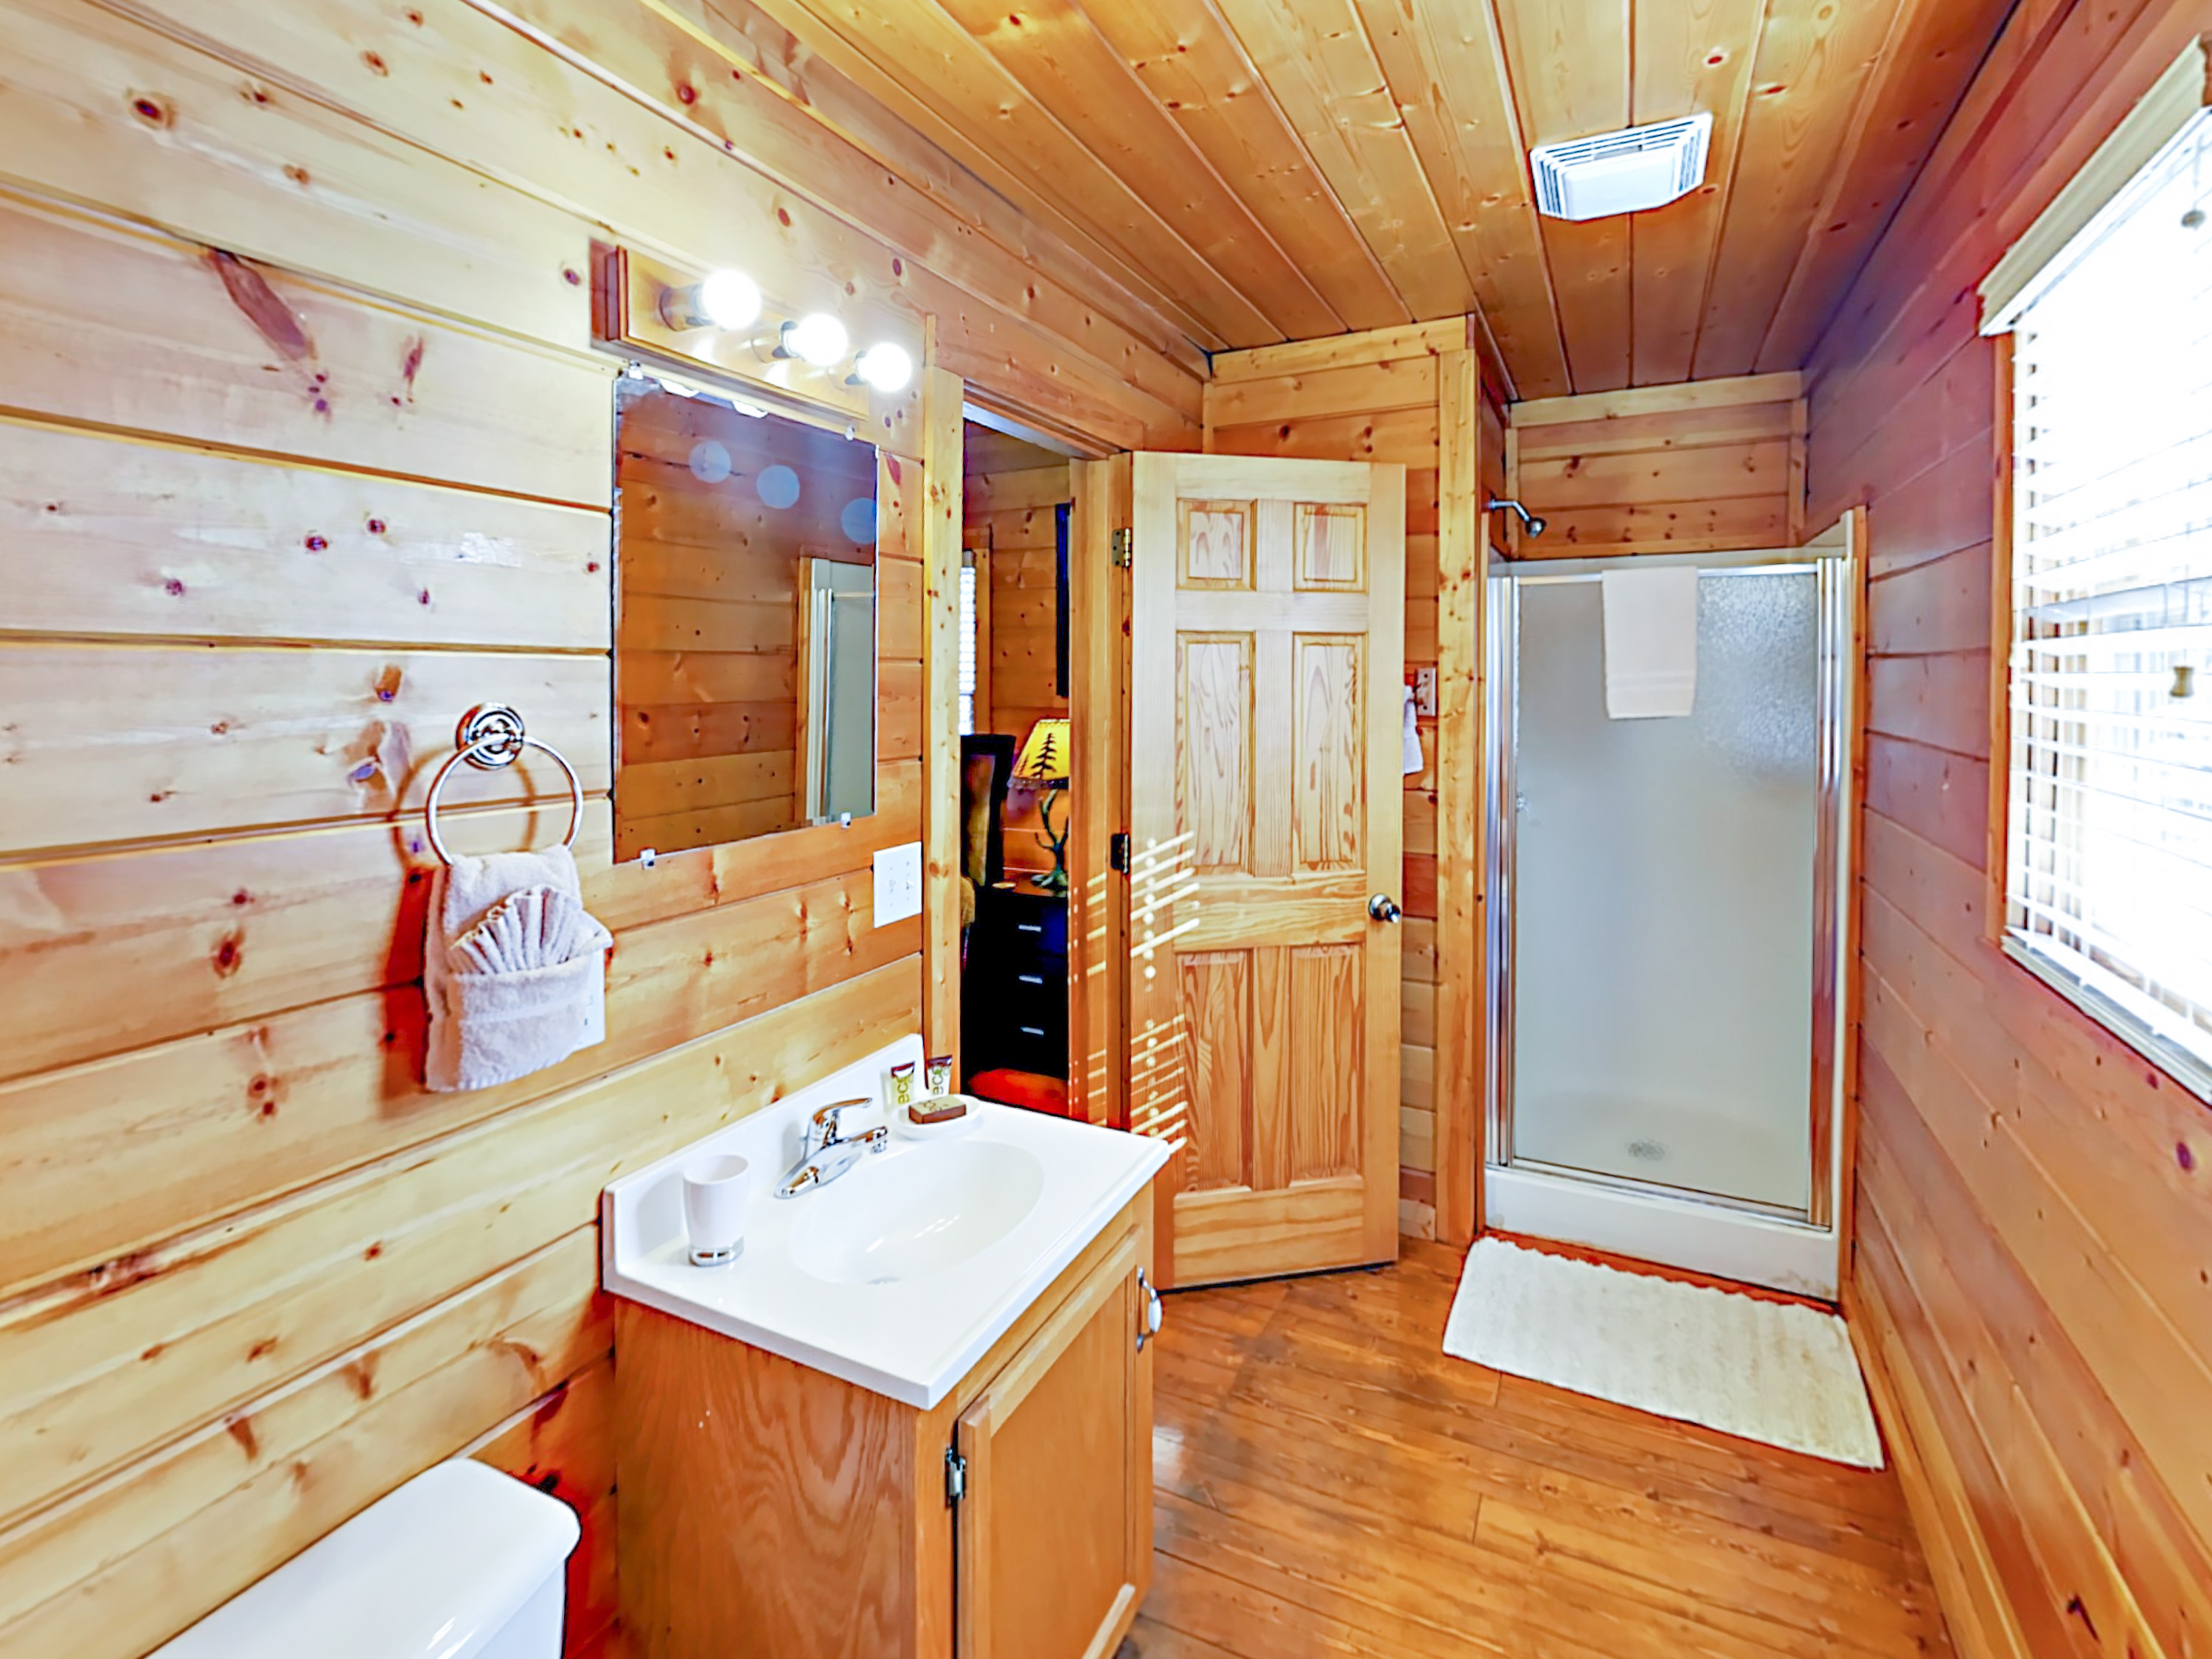 nd vction cabins indoor plce dorble tn interior specil cabin pool dccor large forge pigeon getwy secluded in with luxury